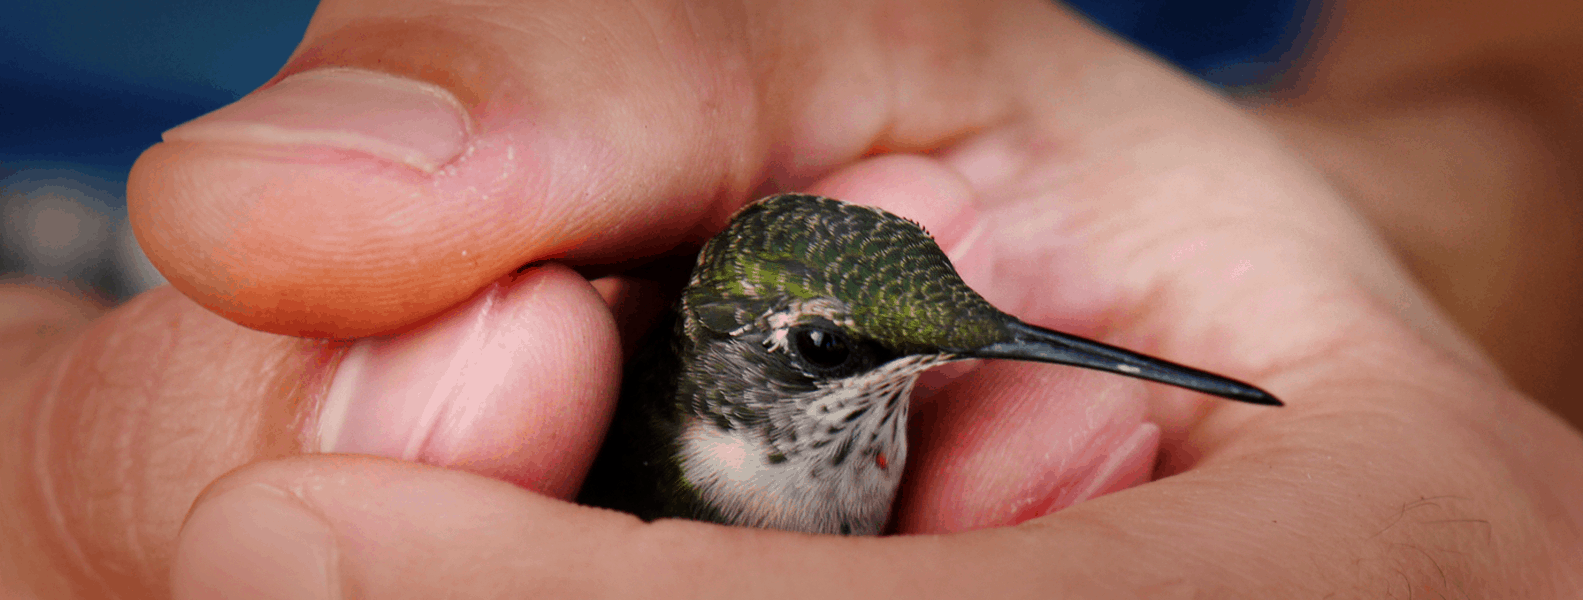 Ruby Throated Humming Bird in Aaron's hand - tyrantfarms.com